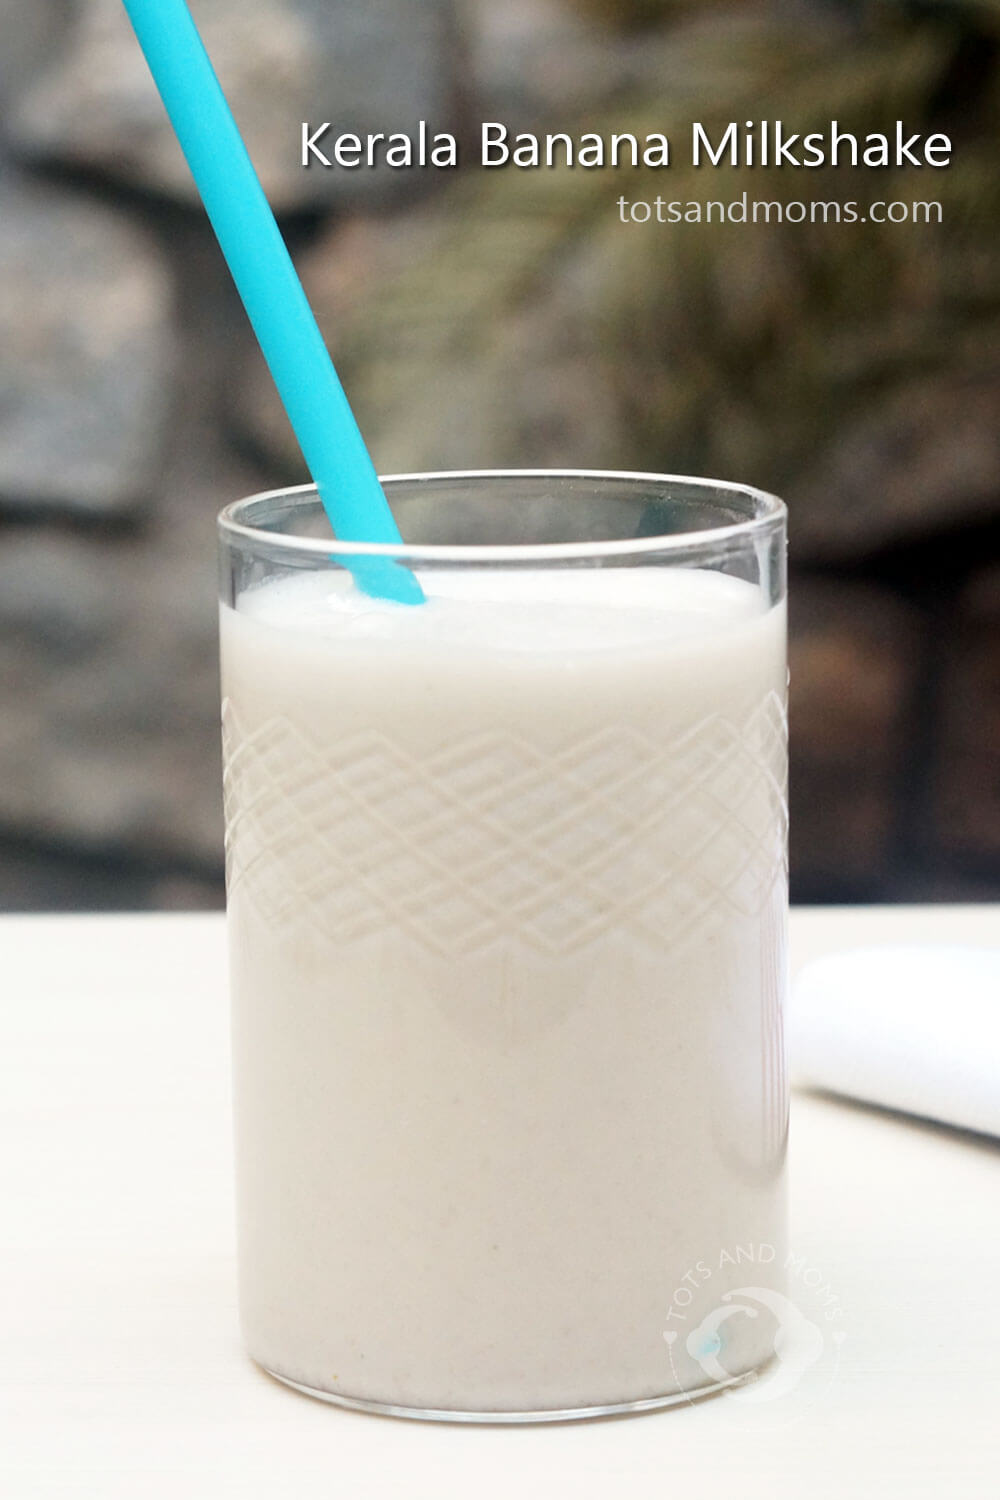 Kerala Banana Milkshake for Kids